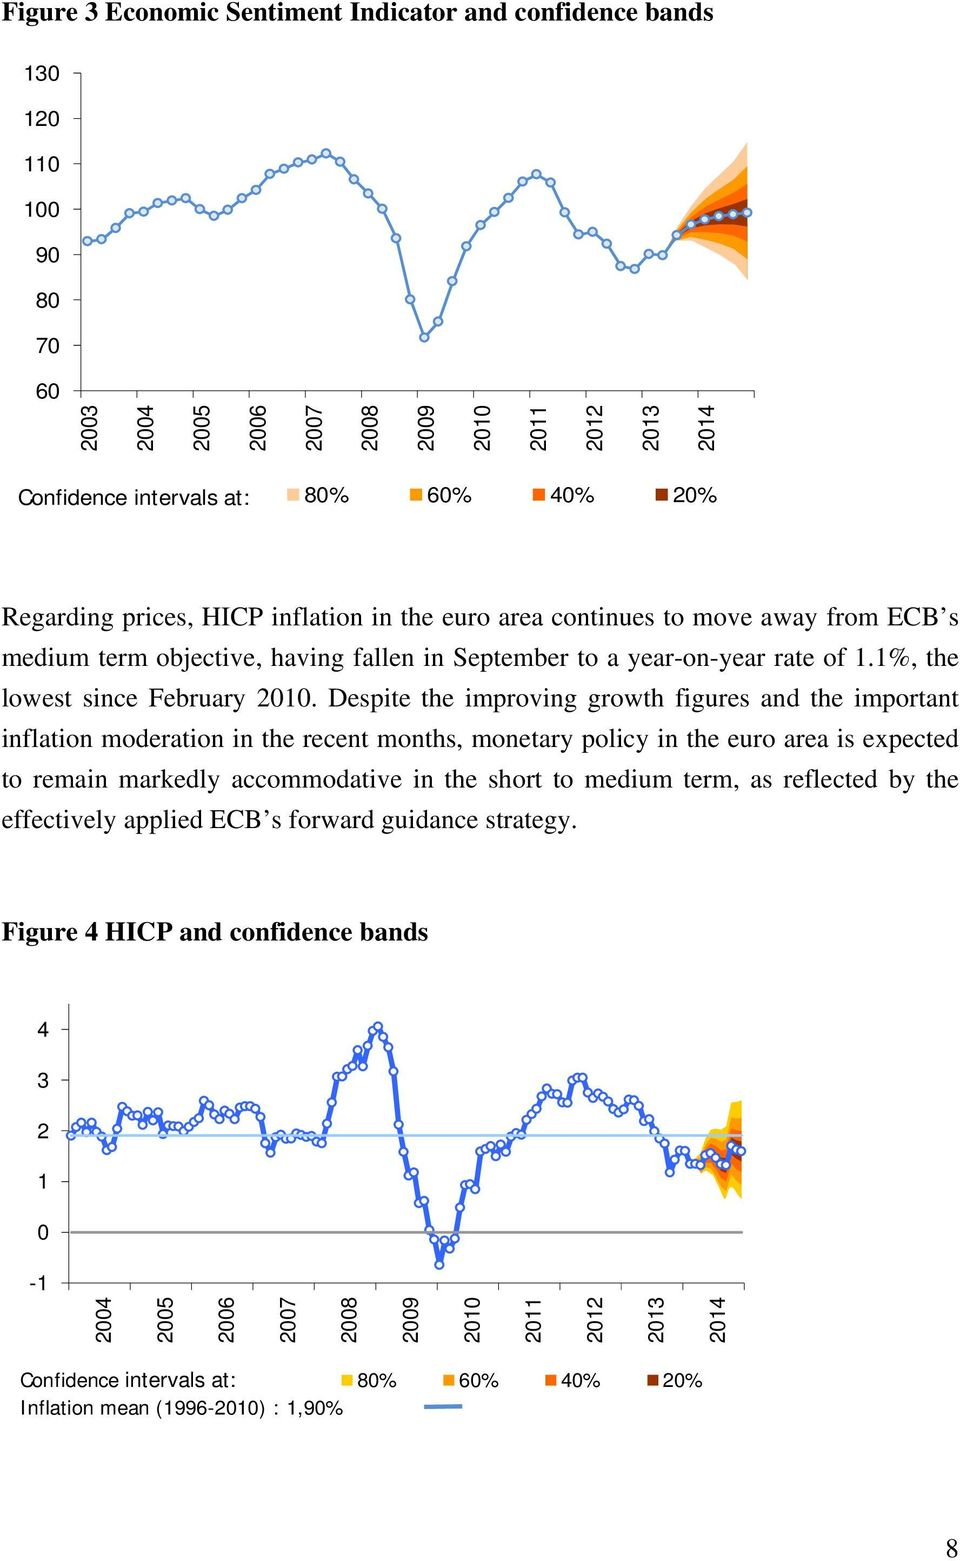 Despite the improving growth figures and the important inflation moderation in the recent months, monetary policy in the euro area is expected to remain markedly accommodative in the short to medium